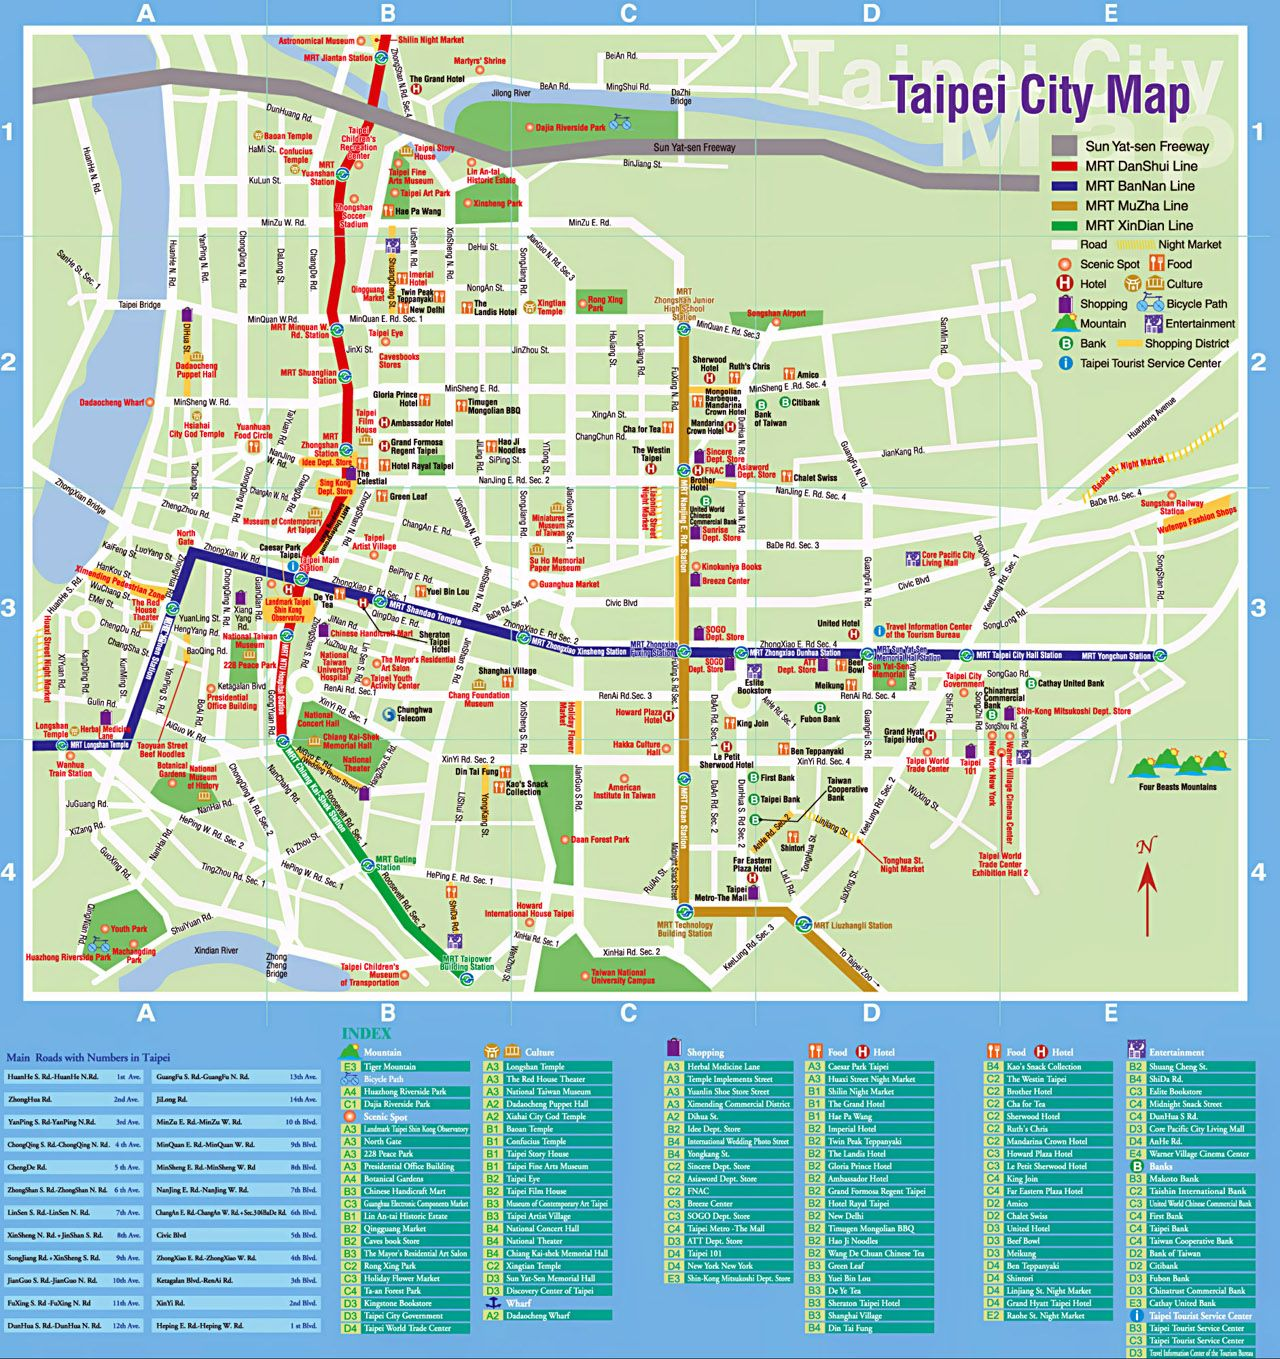 Image result for taipei map taiwan pinterest tourist map image result for taipei map taipei traveltourist maptaipei taiwancity sciox Images